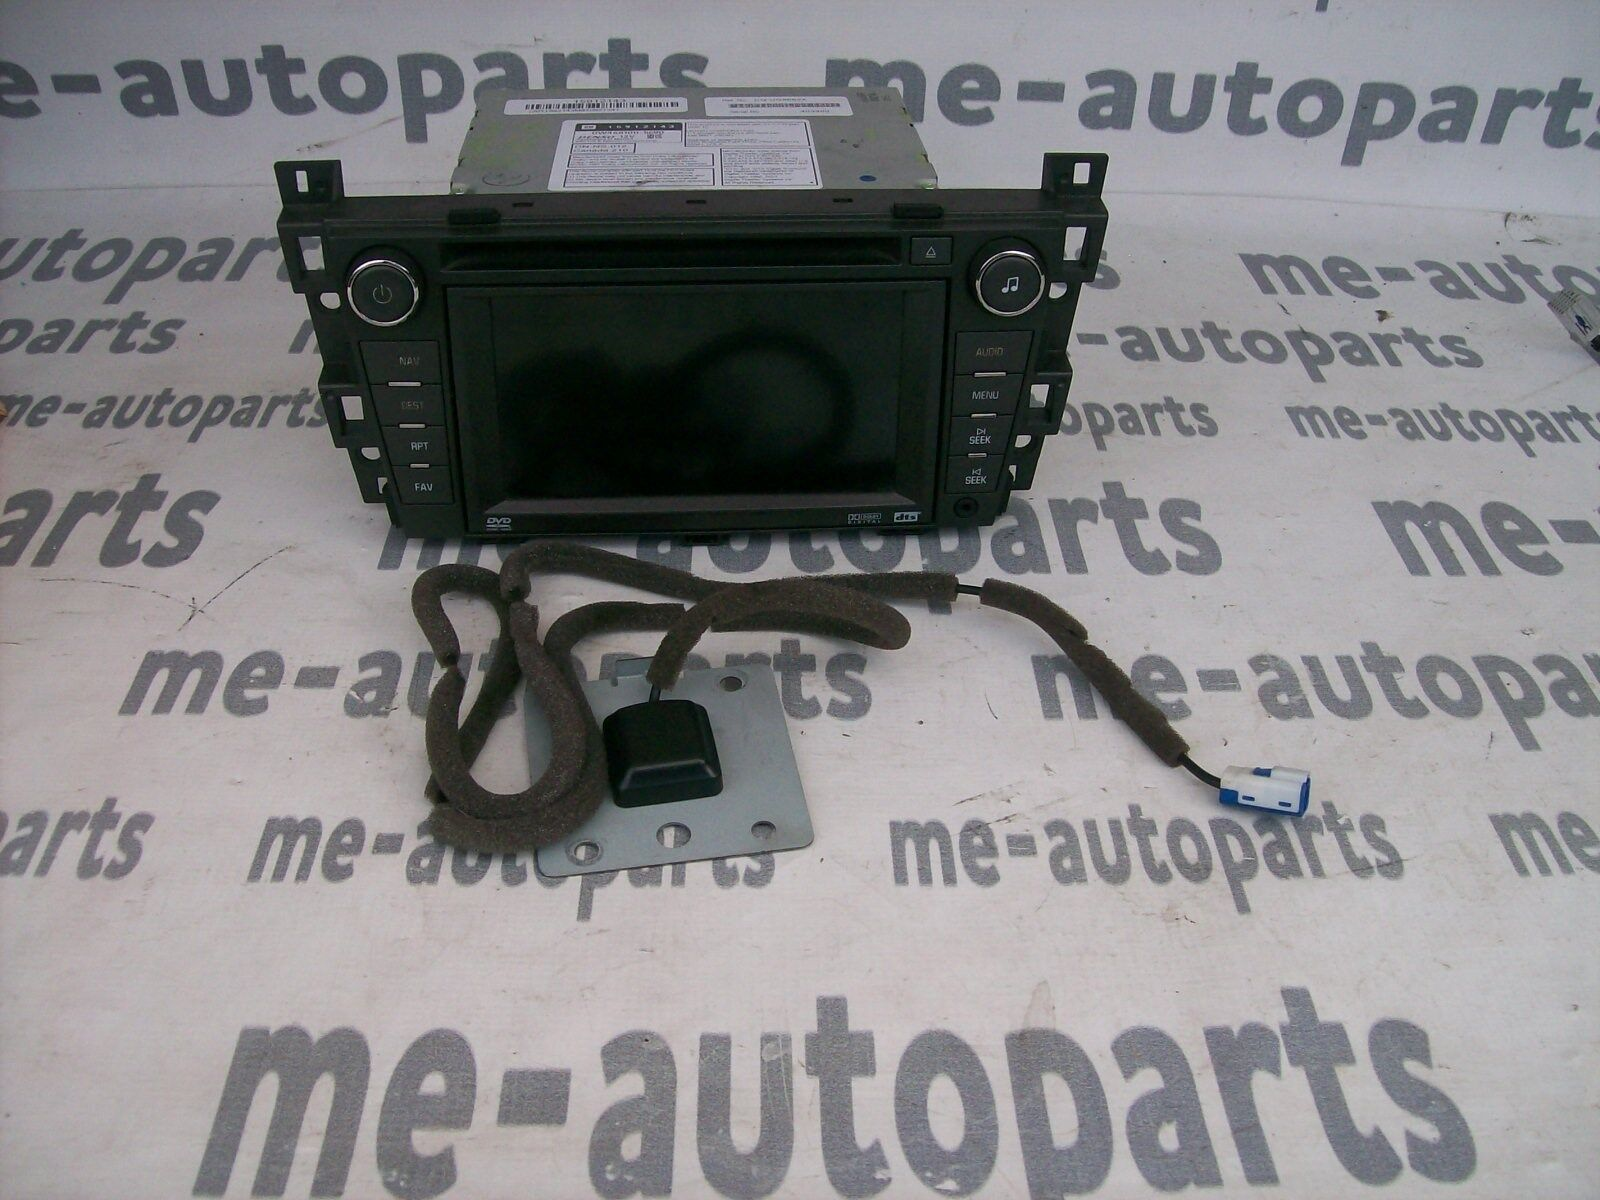 used cadillac dts interior parts for sale page 2 2009 2011 Buick Lucerne Cadillac Dts Electrical Fuse Box Upper 2007 cadillac dts navigation radio stereo cd dvd player 15912143 u3r antenna